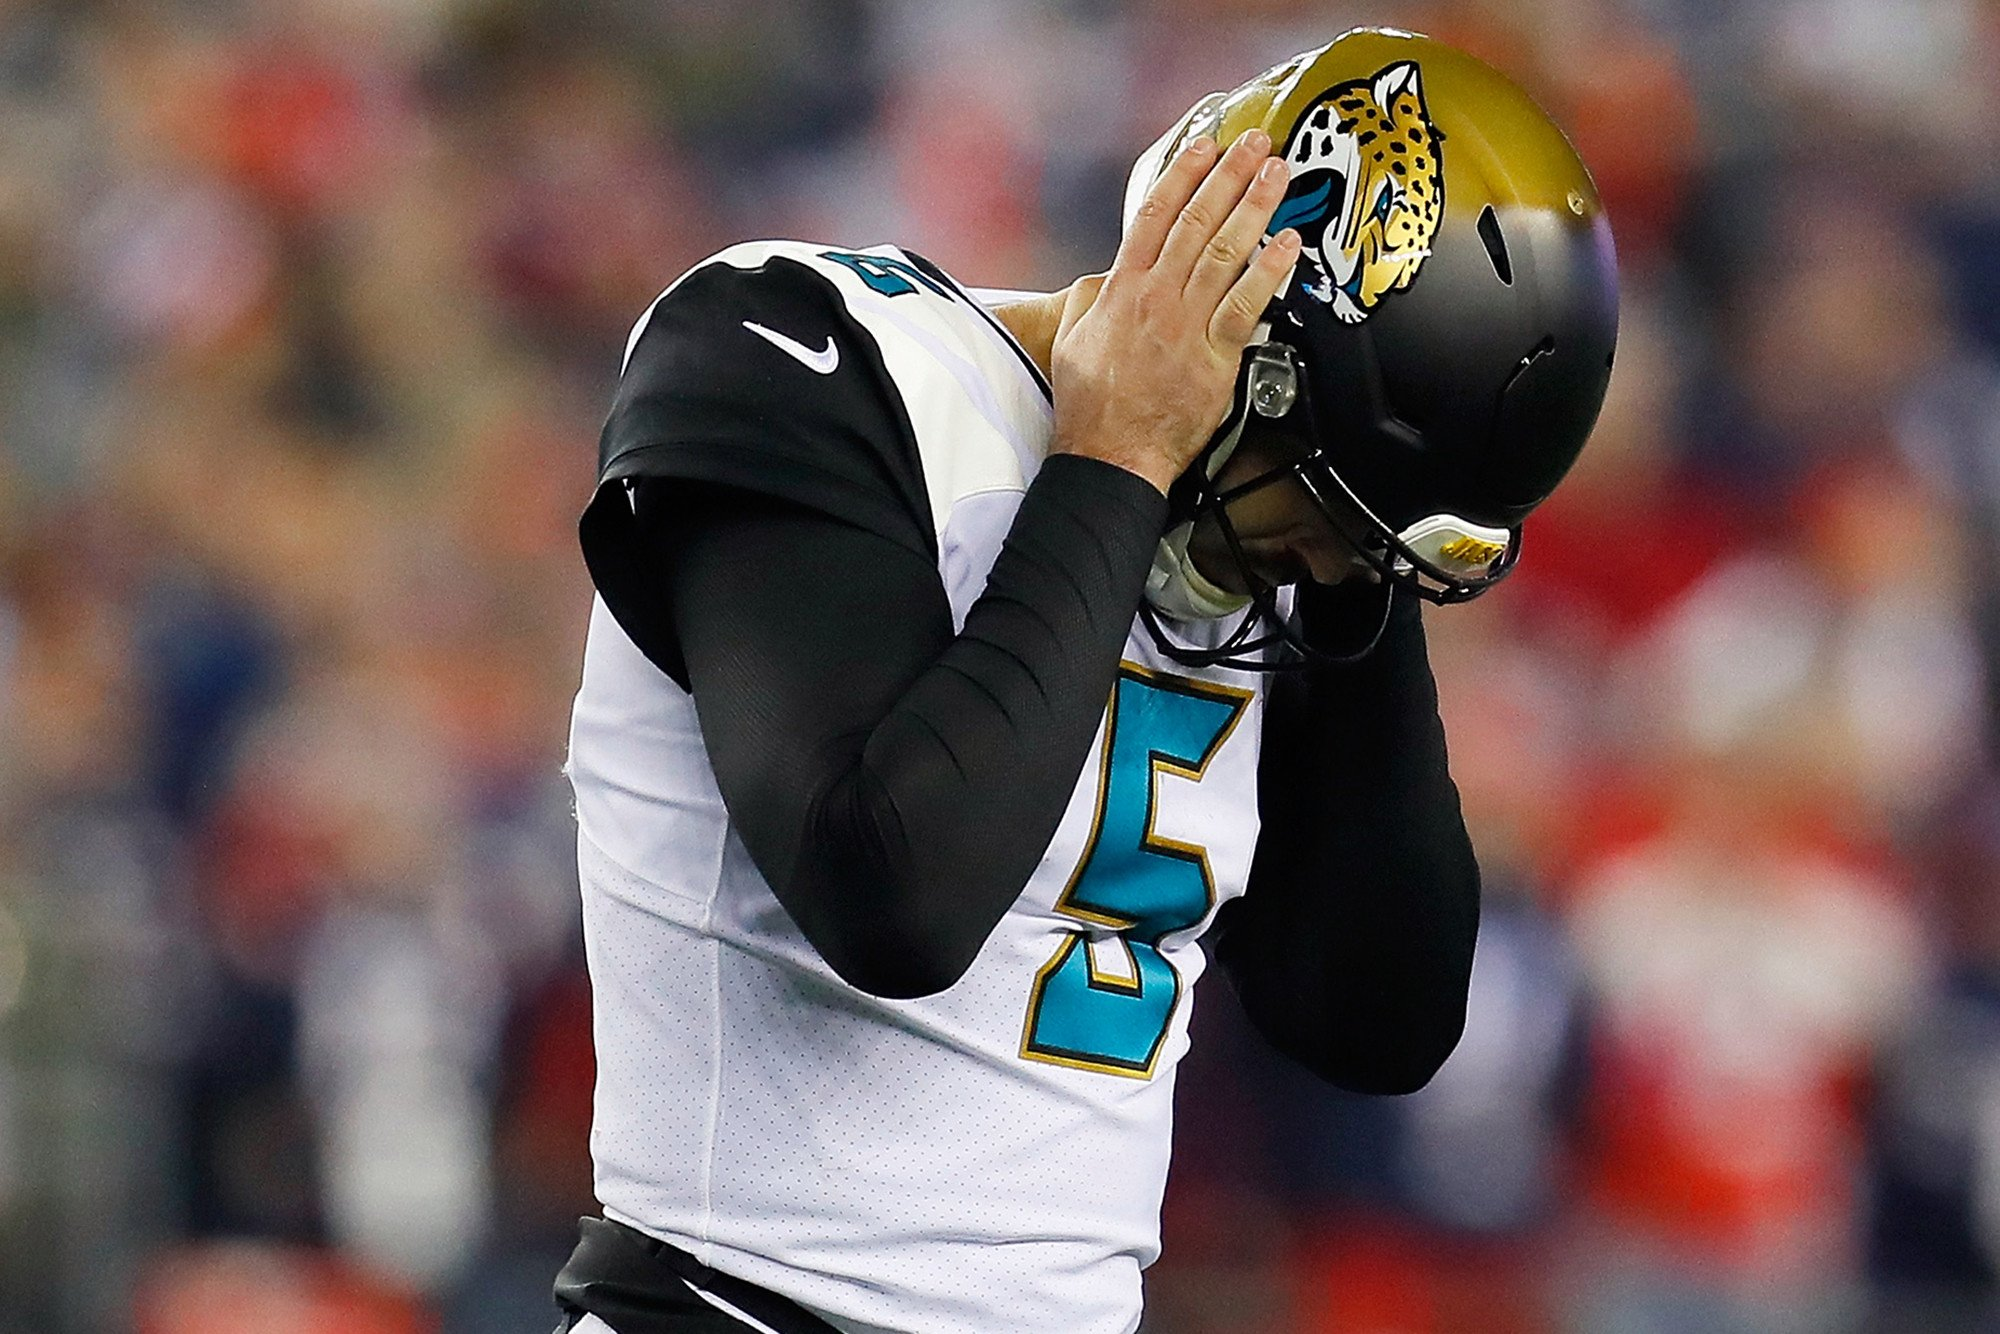 Blake Bortles' face shows how much Brady crushed Jaguars